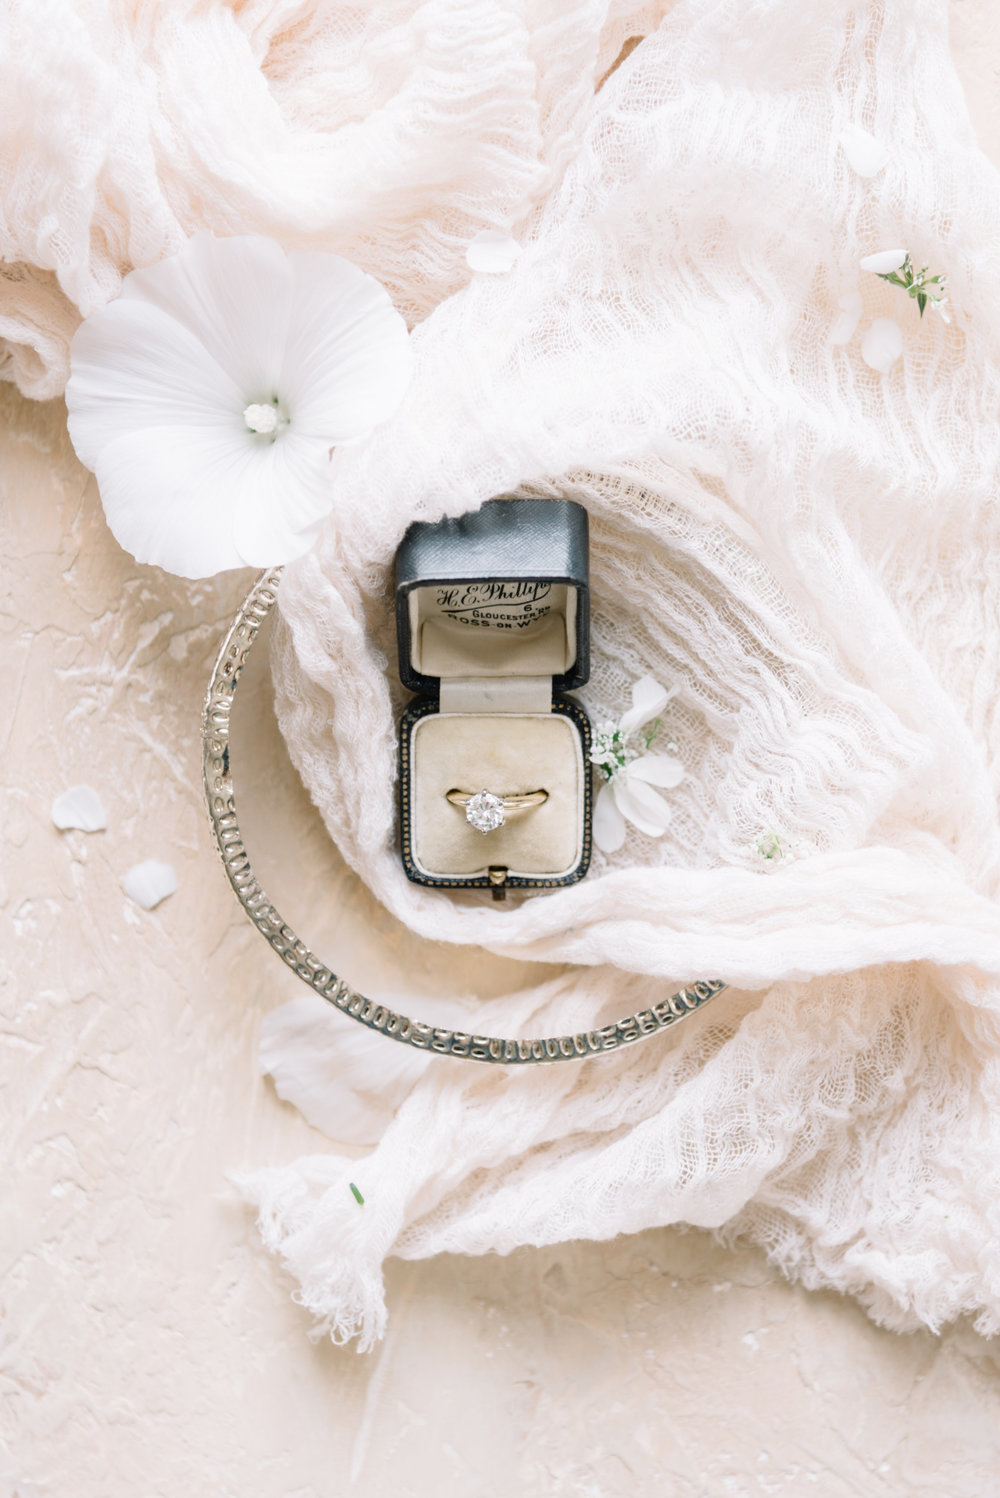 Lily & Sage | Jennifer & Timothy's English Country Manor Wedding Soft Pink Pale Blue White and Silver Toned Green Neutral Tones American Bride North Cadbury Court | Nicole Colwell Photography 0625.jpg